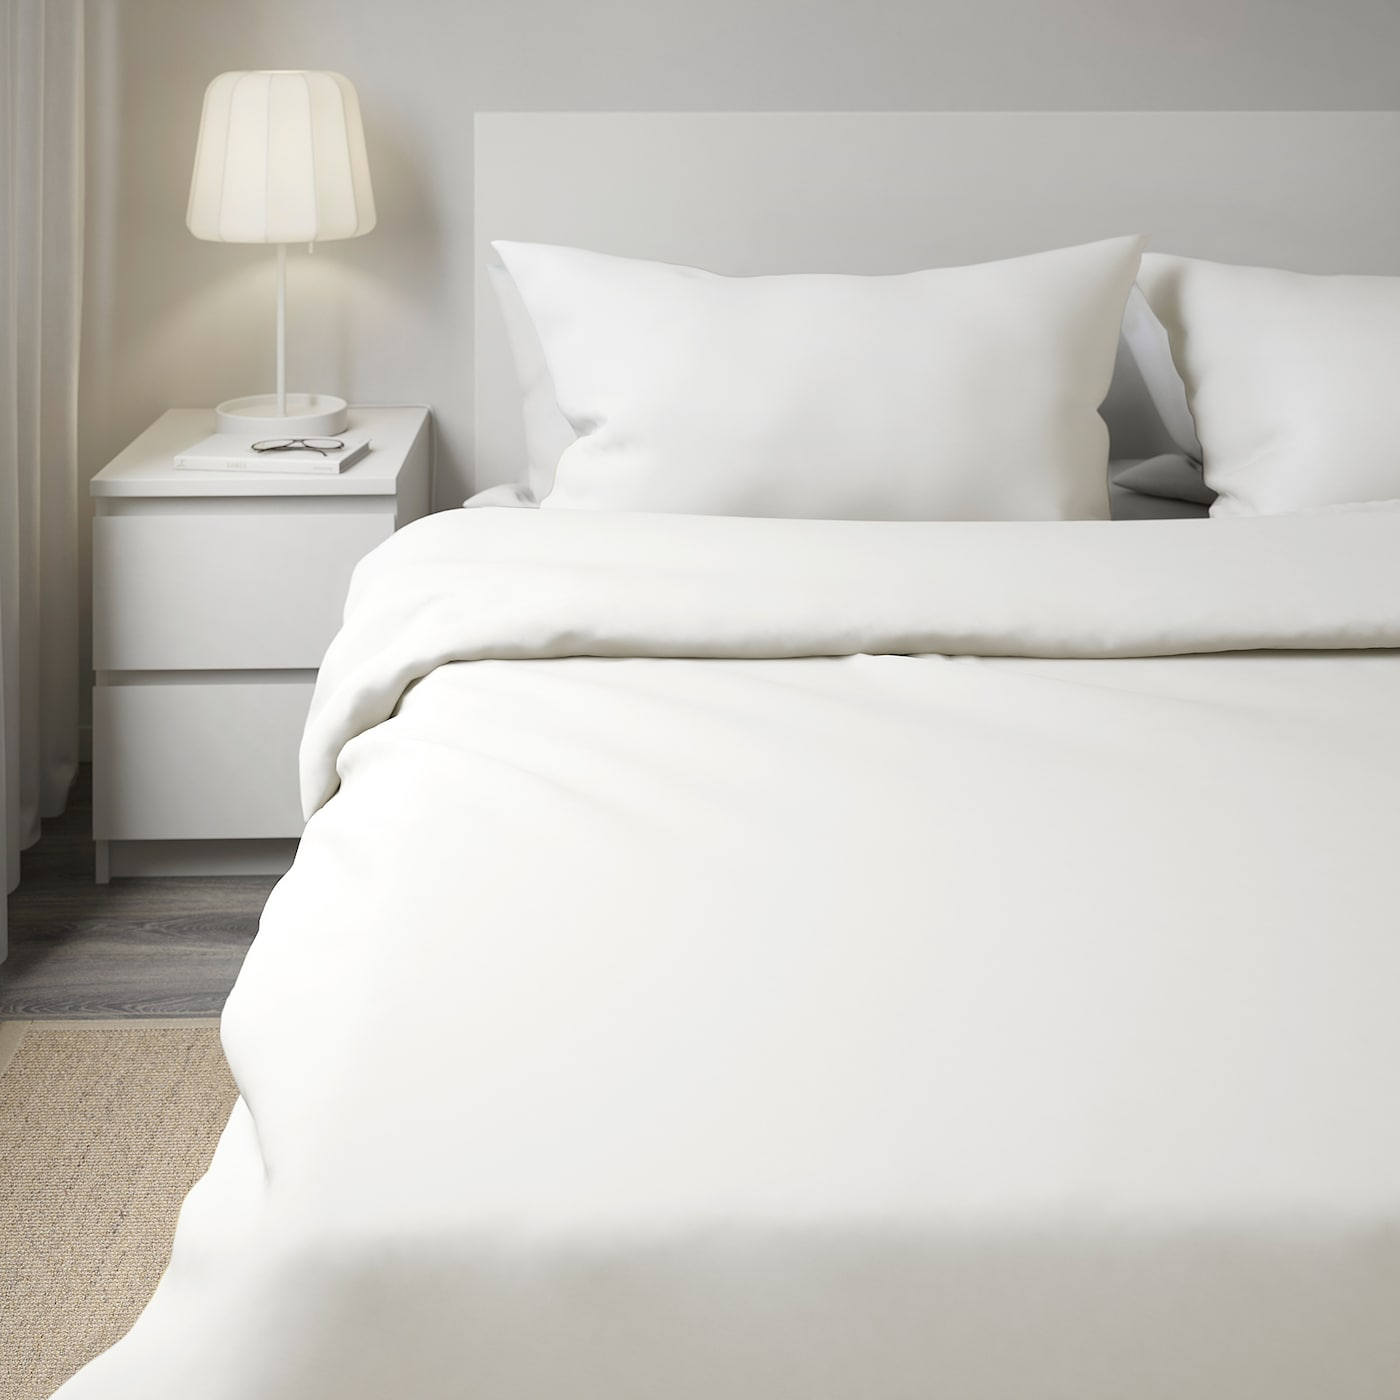 Dvala Duvet Cover And Pillowcase S